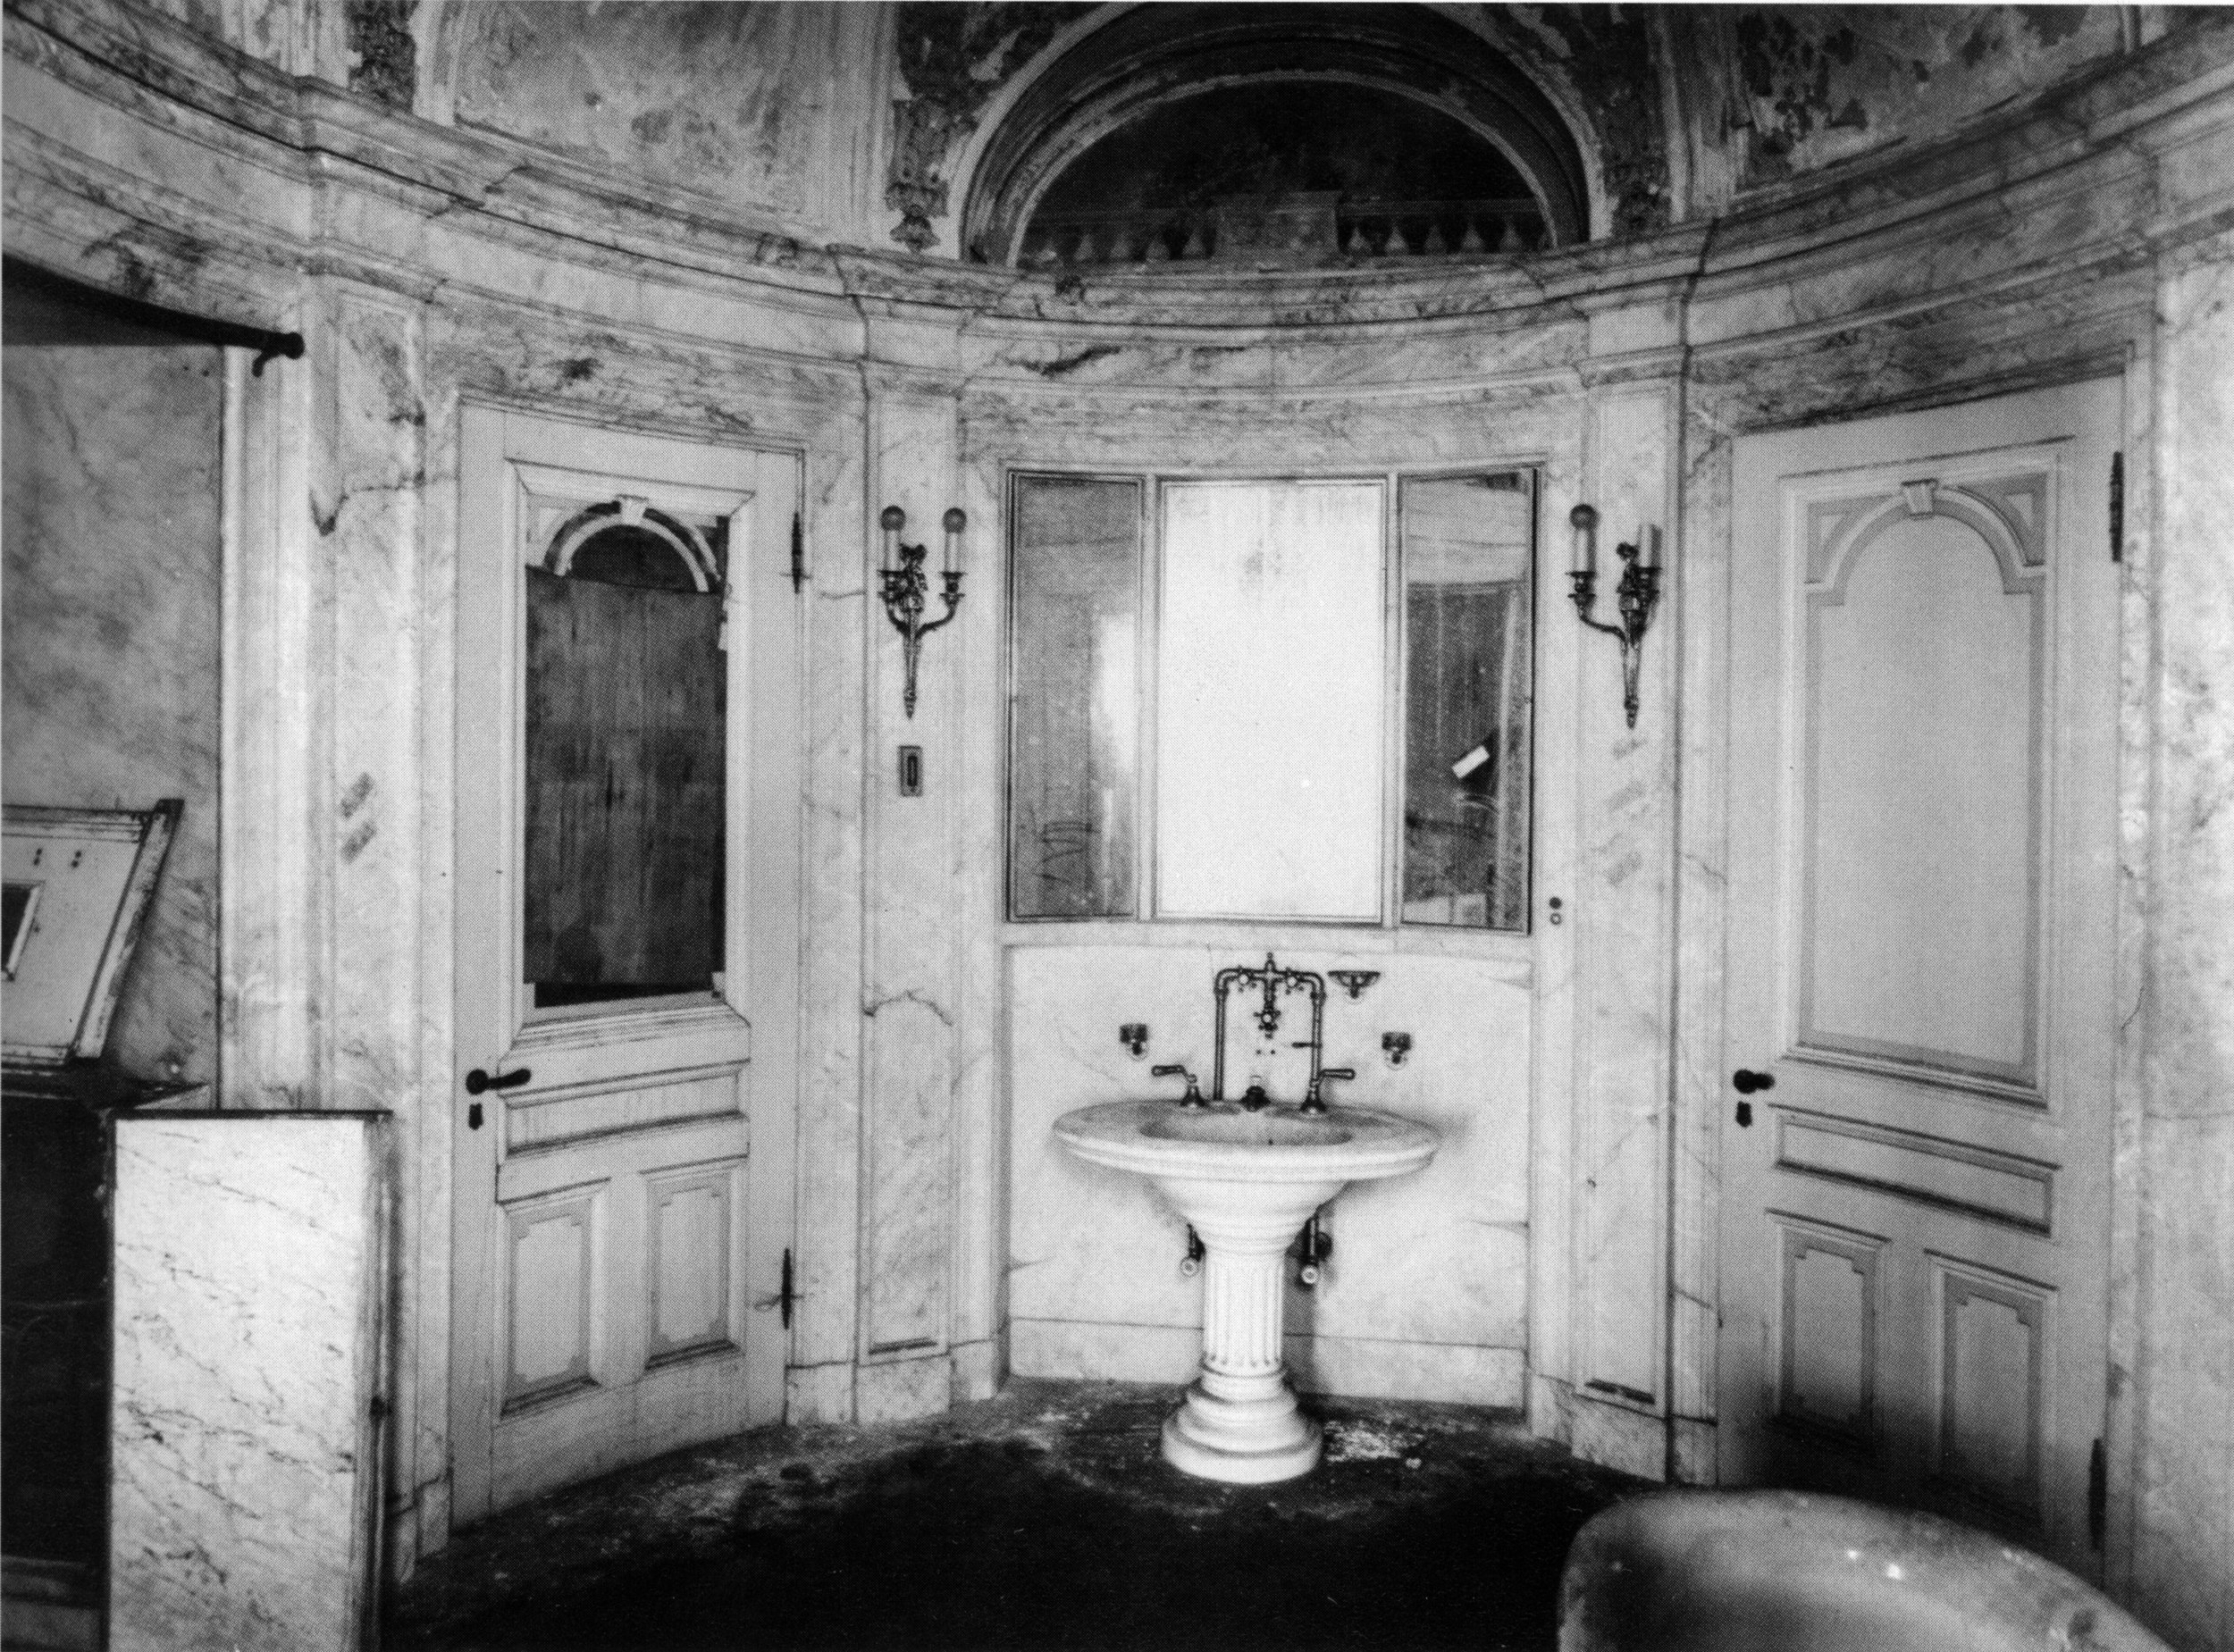 Master Bathroom schwab nyc.jpg